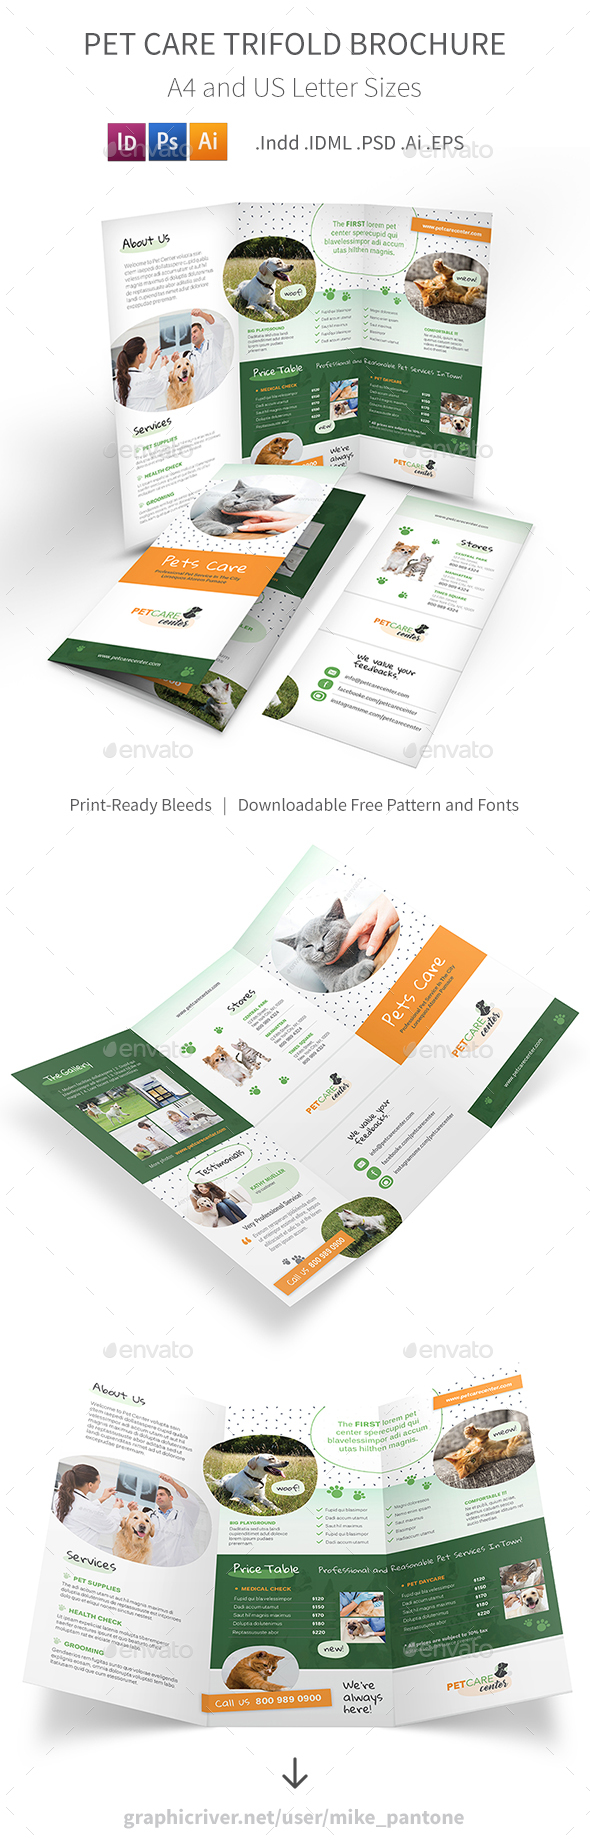 Pet Care Trifold Brochure 6 - Informational Brochures